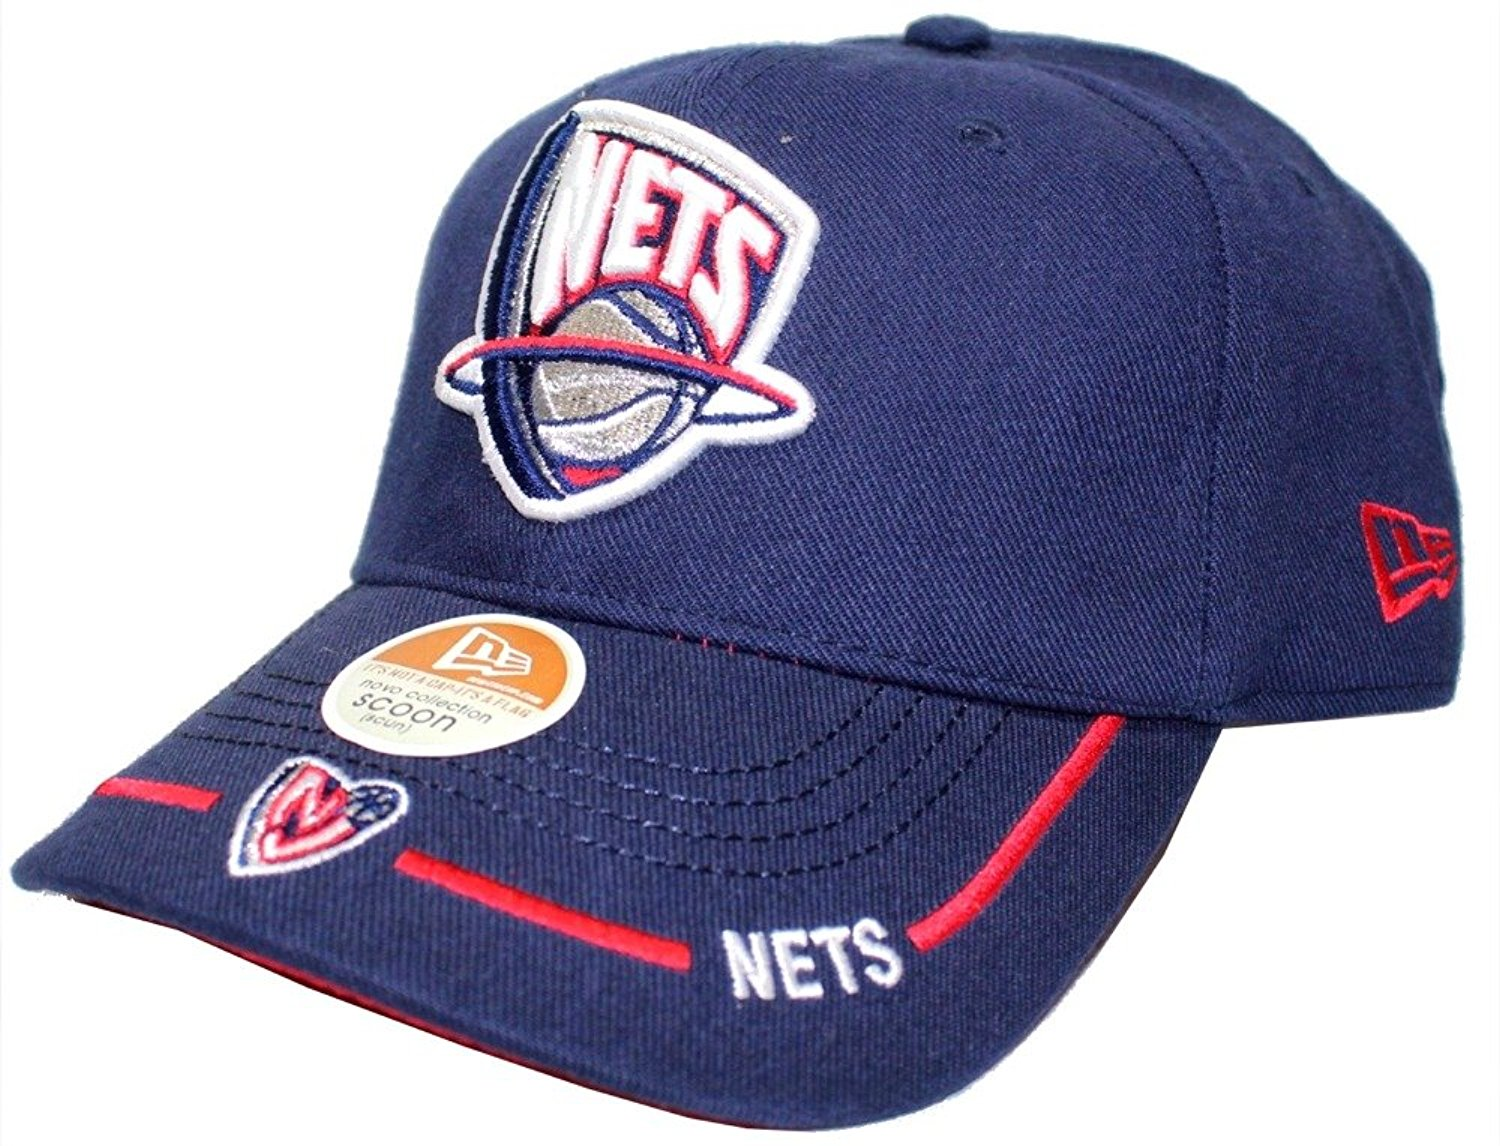 reputable site 9a98a d588b New Jersey Nets Licensed New Era NBA Cap Hat One Size Adjustable Basketball